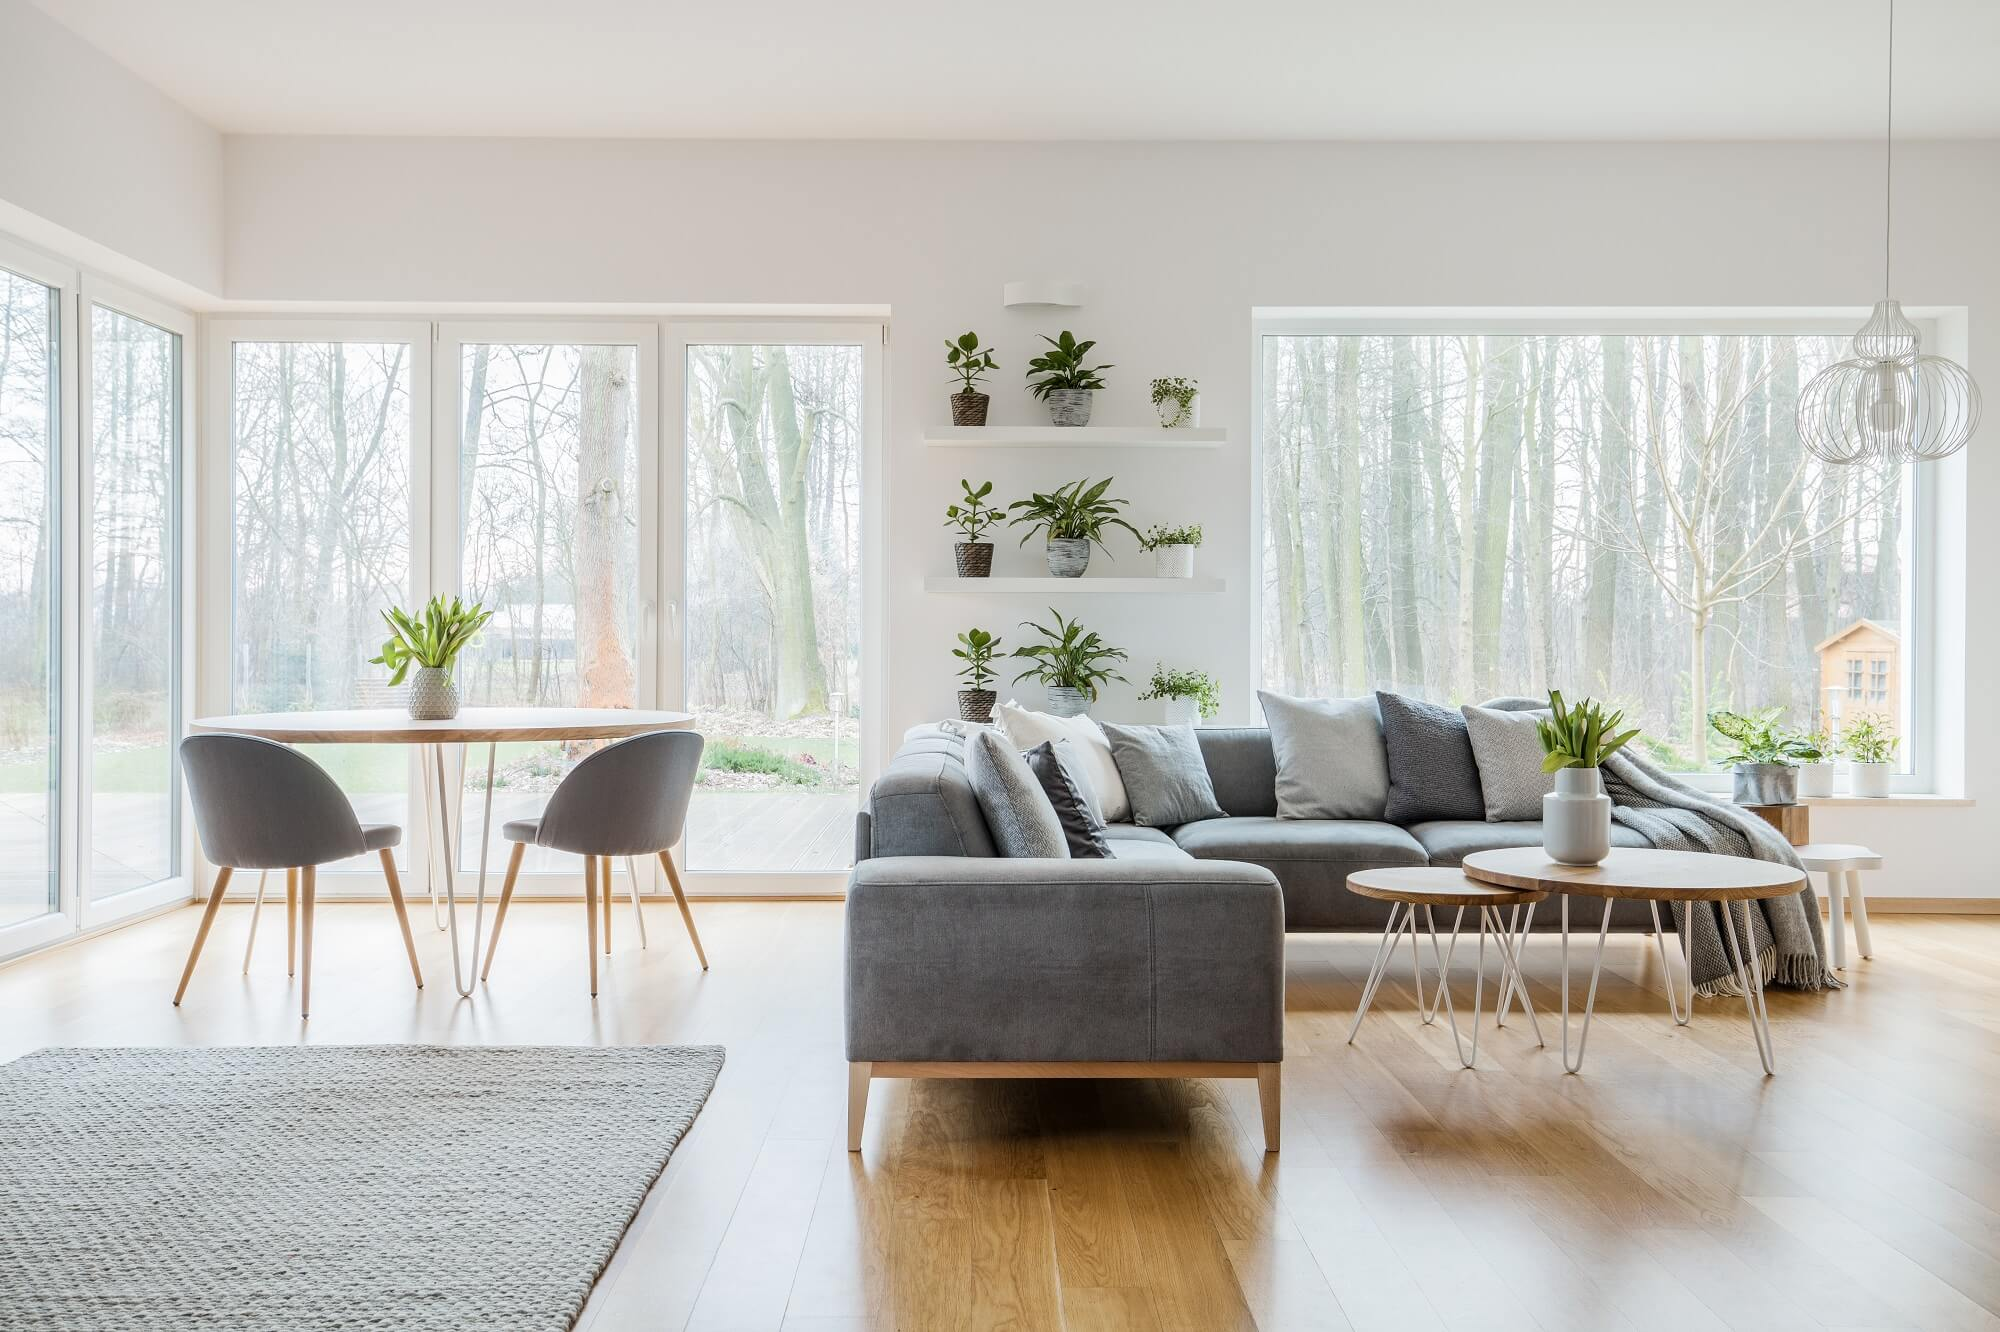 Low Voc Flooring For A Healthy Home